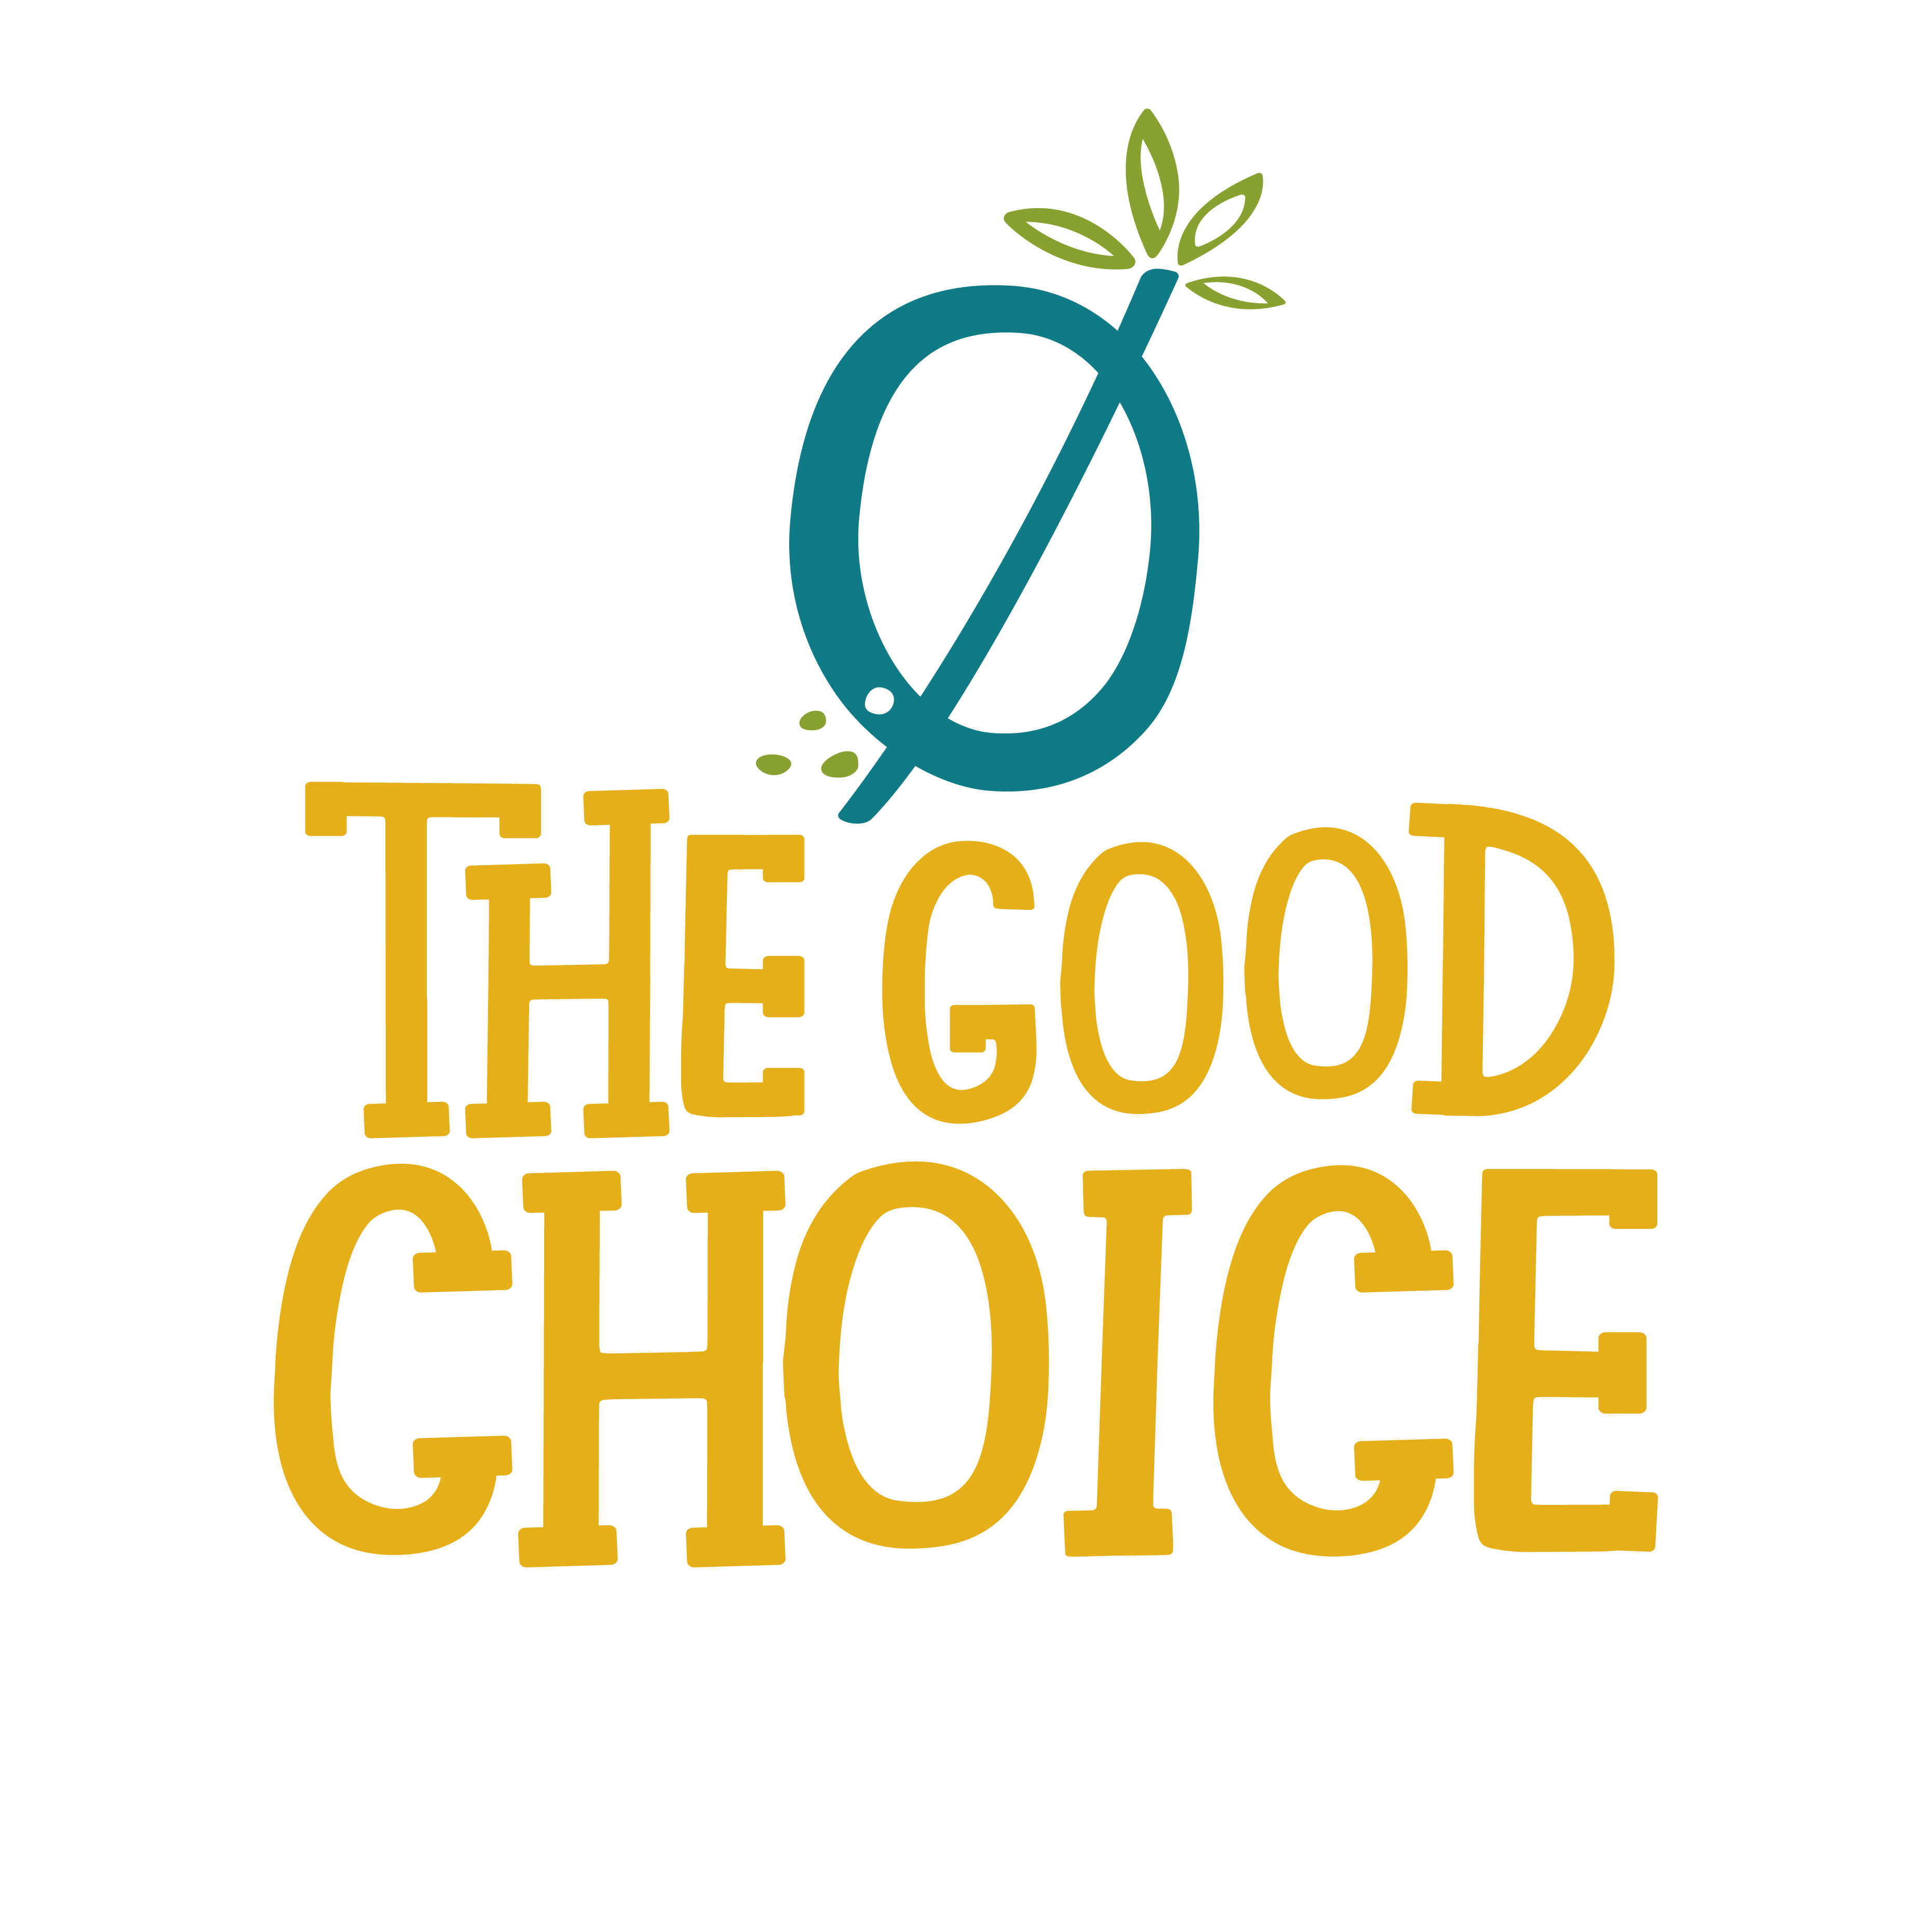 THE GOOD CHOICE